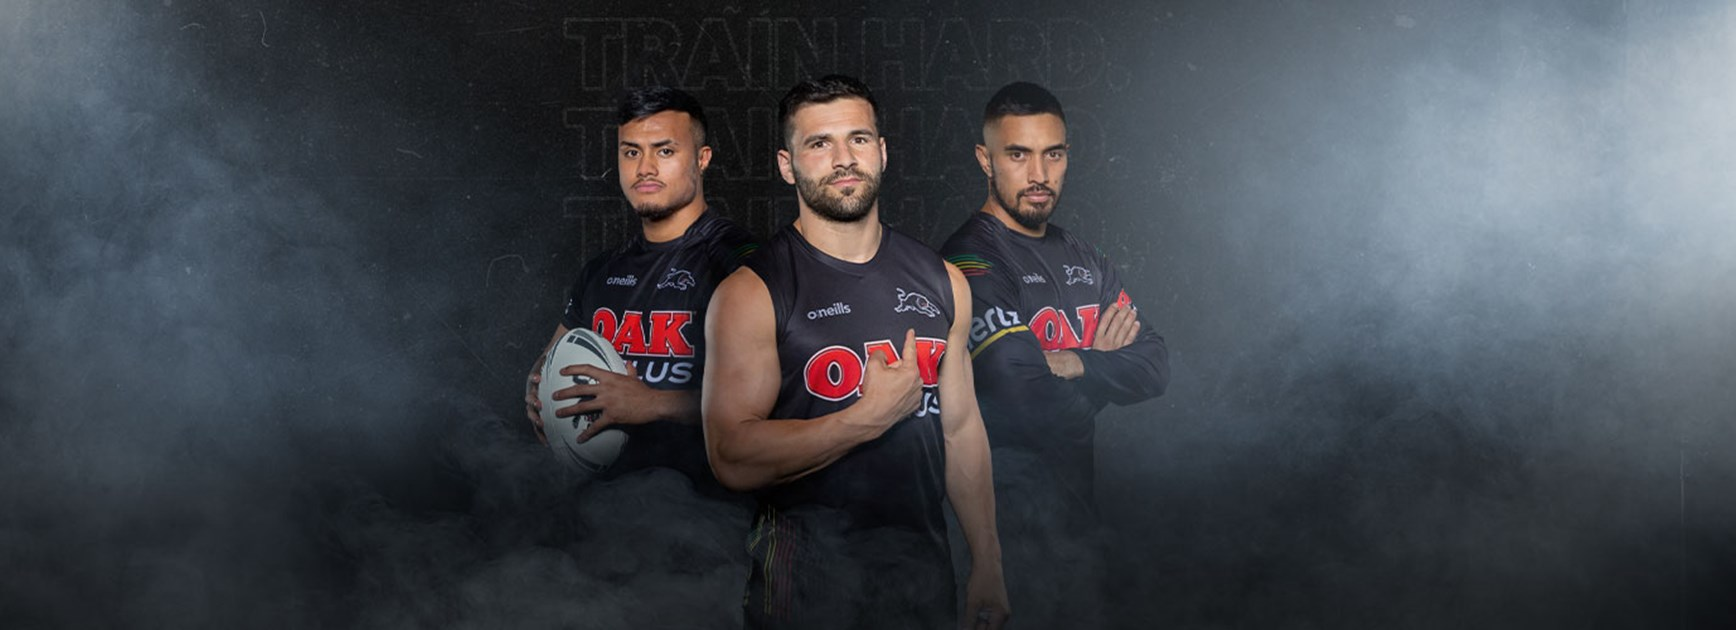 2020 training gear lands at the Panther Shop